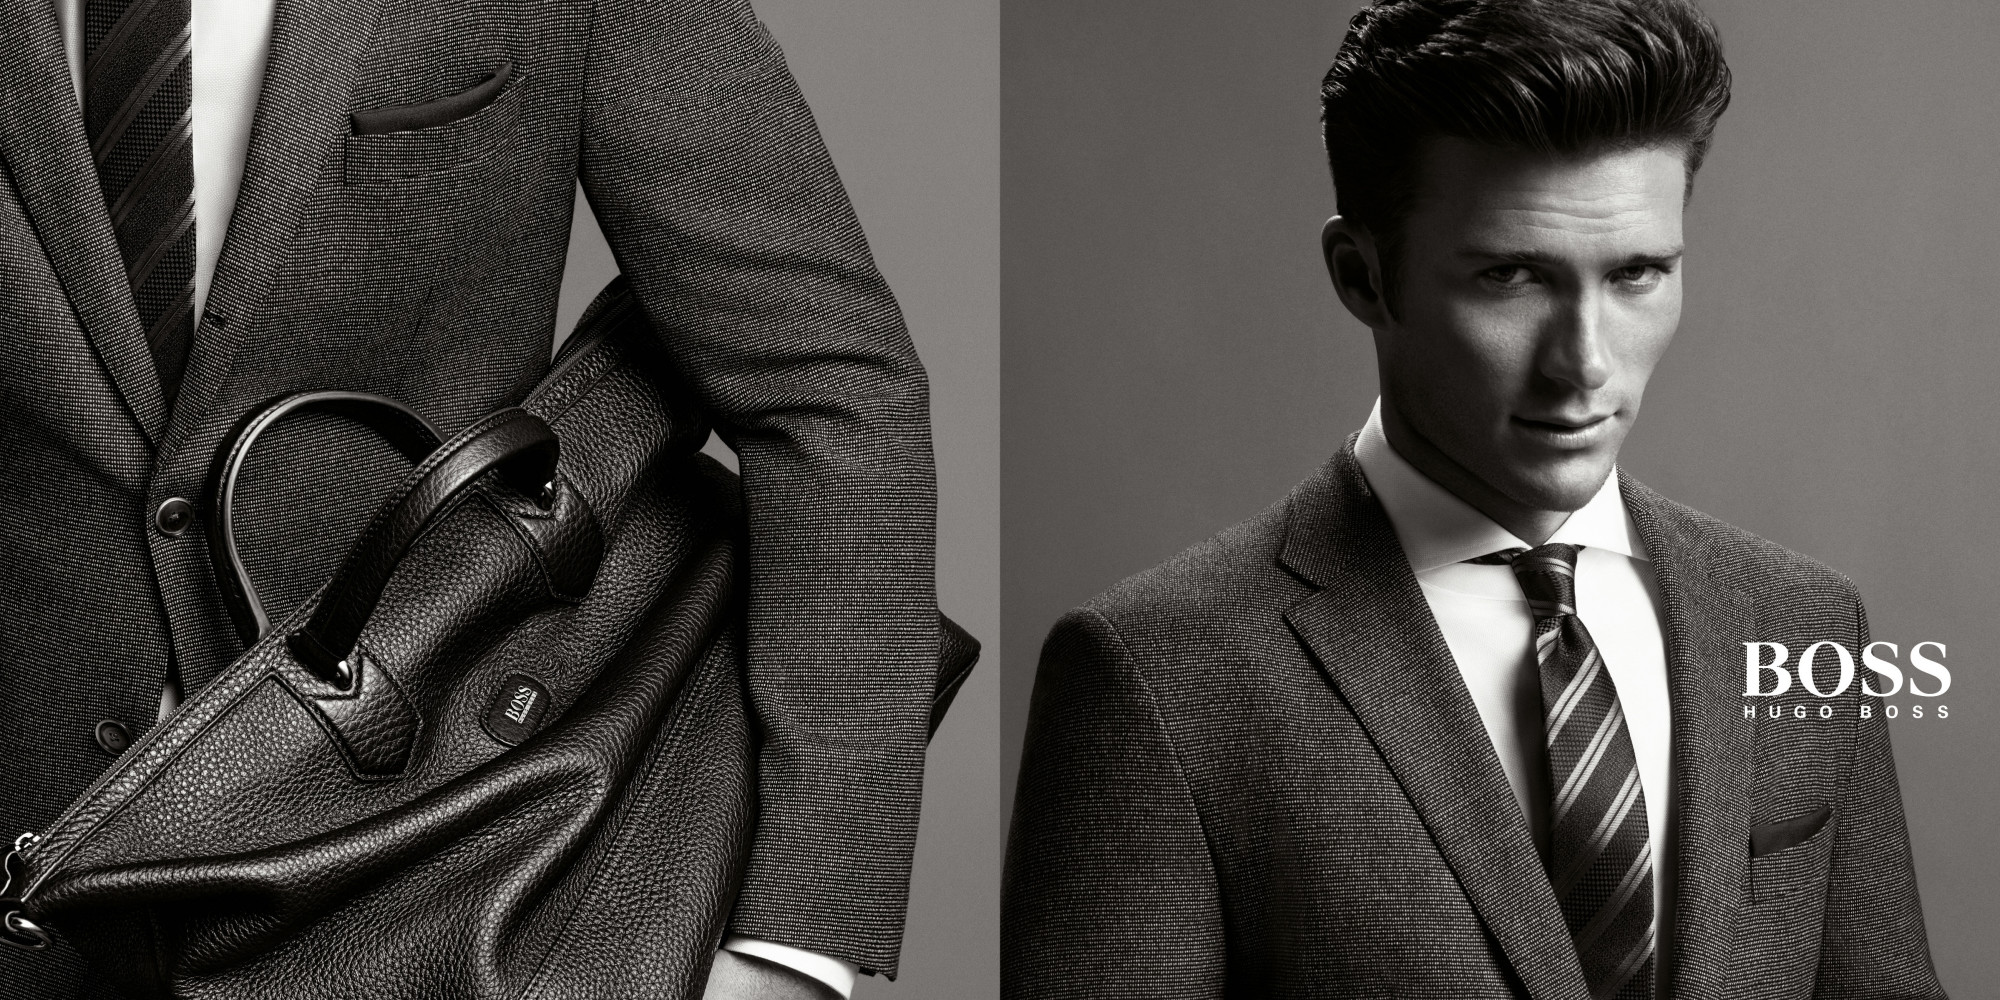 Clint eastwood 39 s son shows off his good genes in hugo boss ads for Is scott eastwood clint eastwood s son